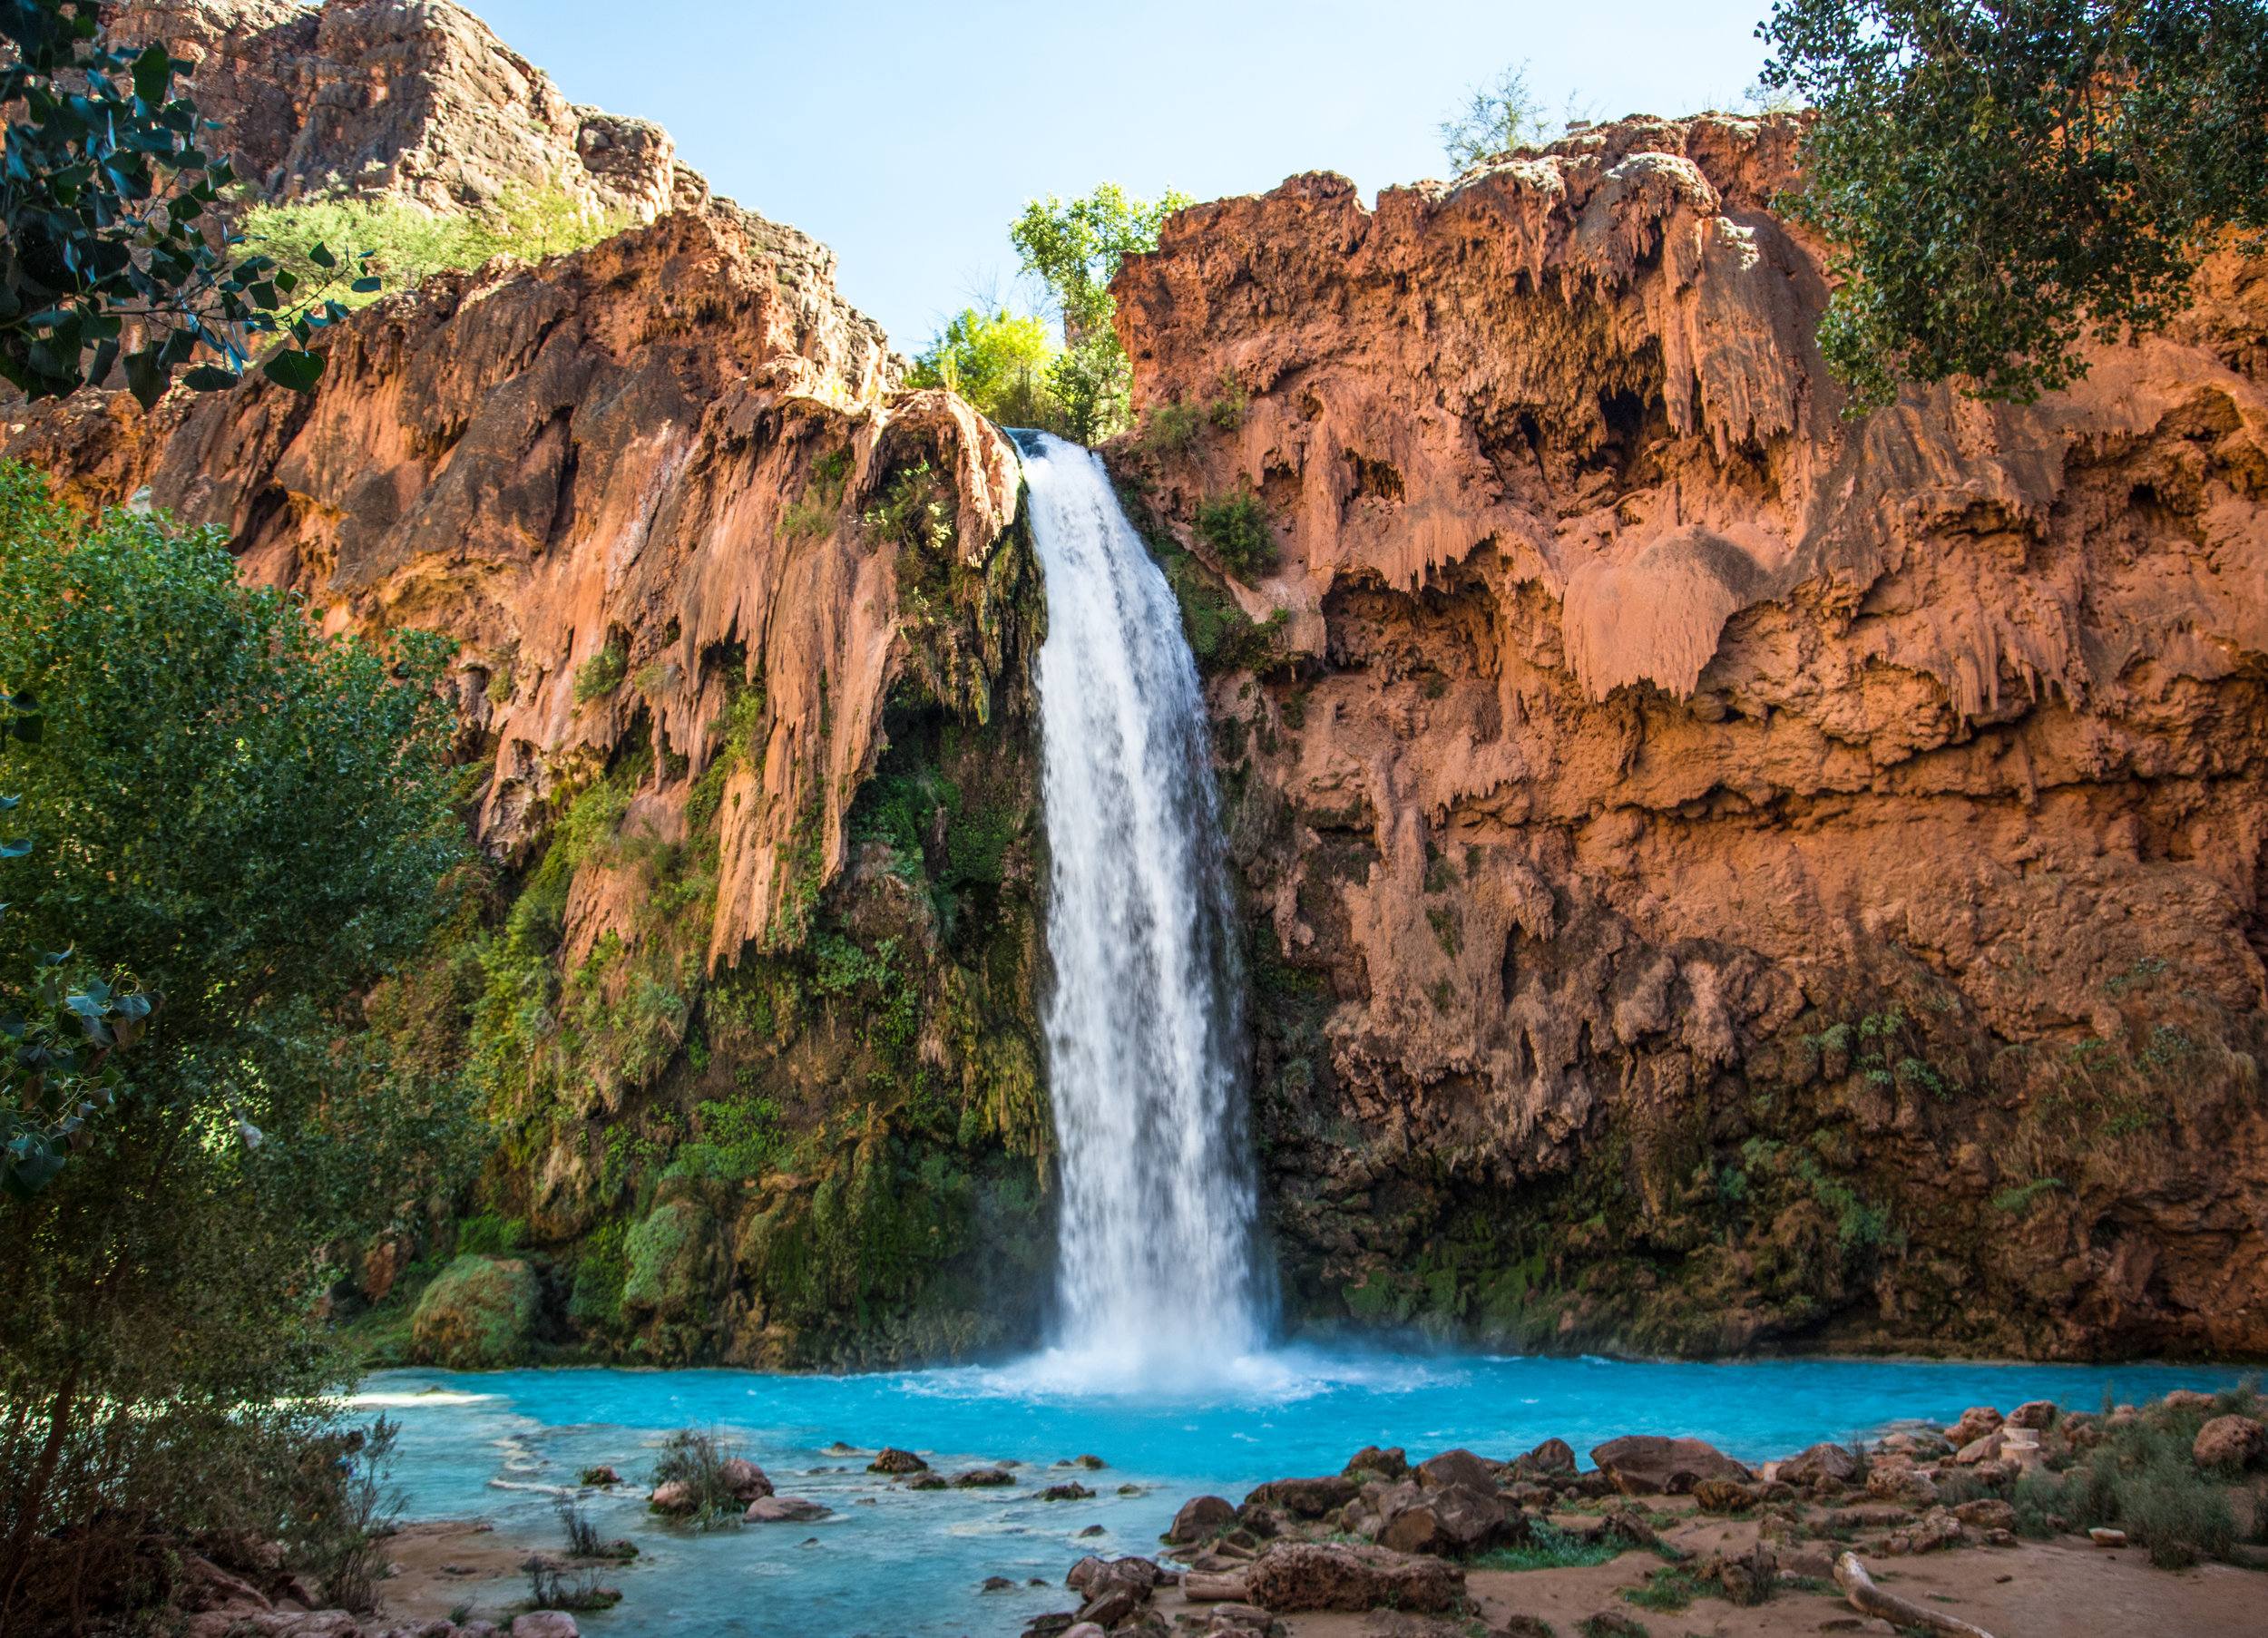 Havasu Falls // Photo: Me! (Randy Johnson)